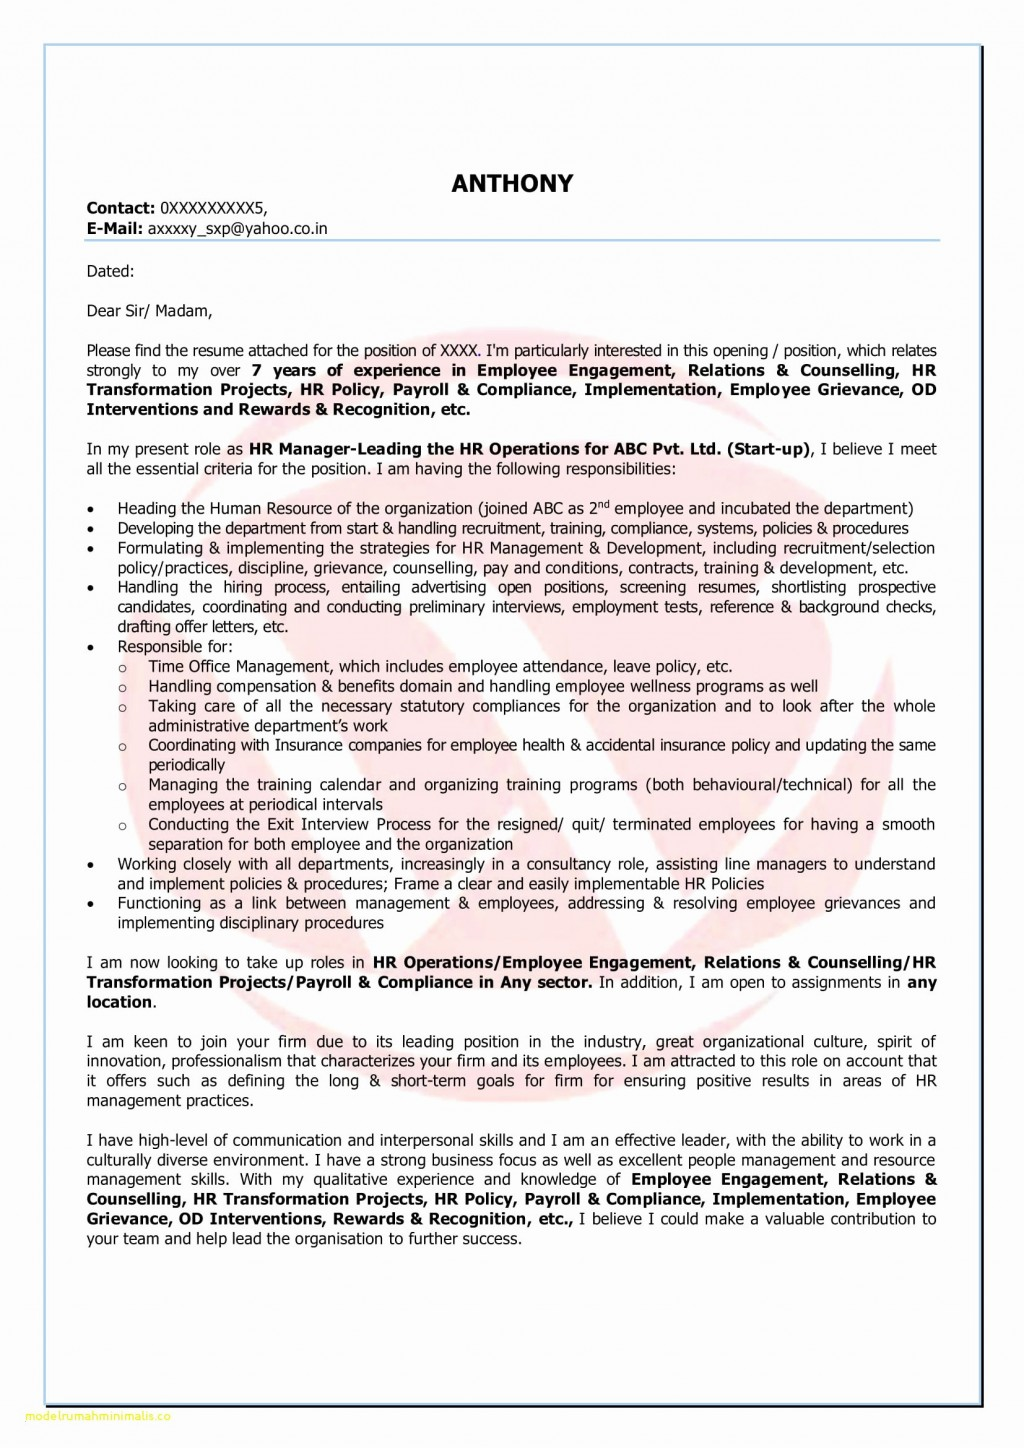 014 Biology Research Paper Example Luxury Ra Cover Letter Design Printable Sample Of Beautiful Ideas Marine Topic Large